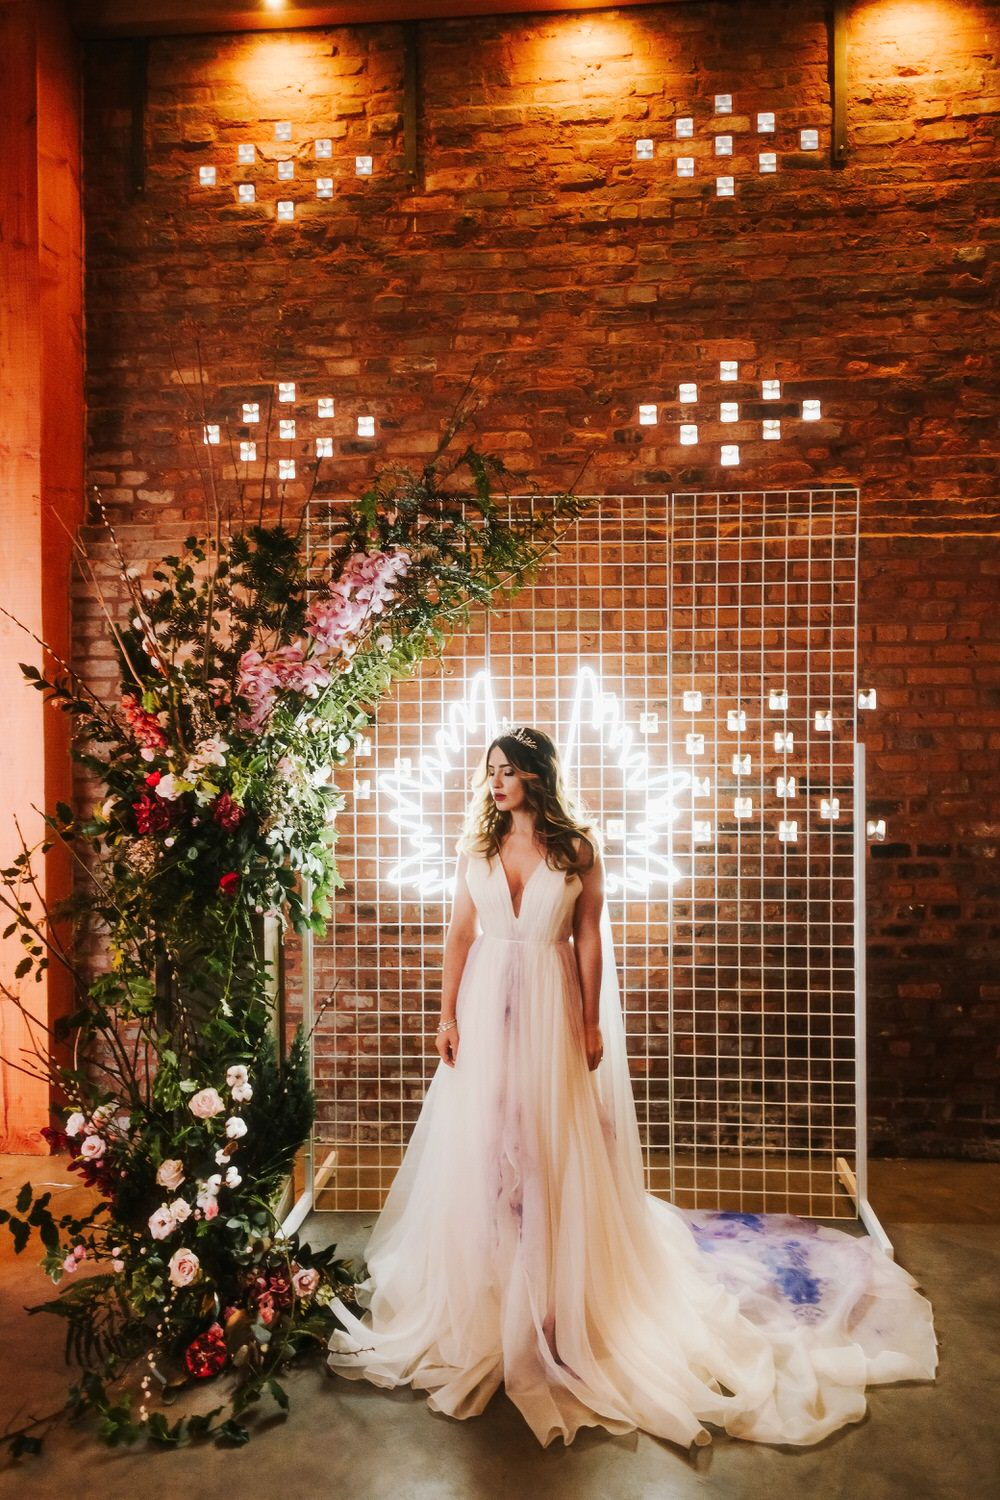 Flower Installation Backdrop Neon Sign Greenery Foliage Metal Romantic Wedding Ideas Neon Lighting Kate McCarthy Photography